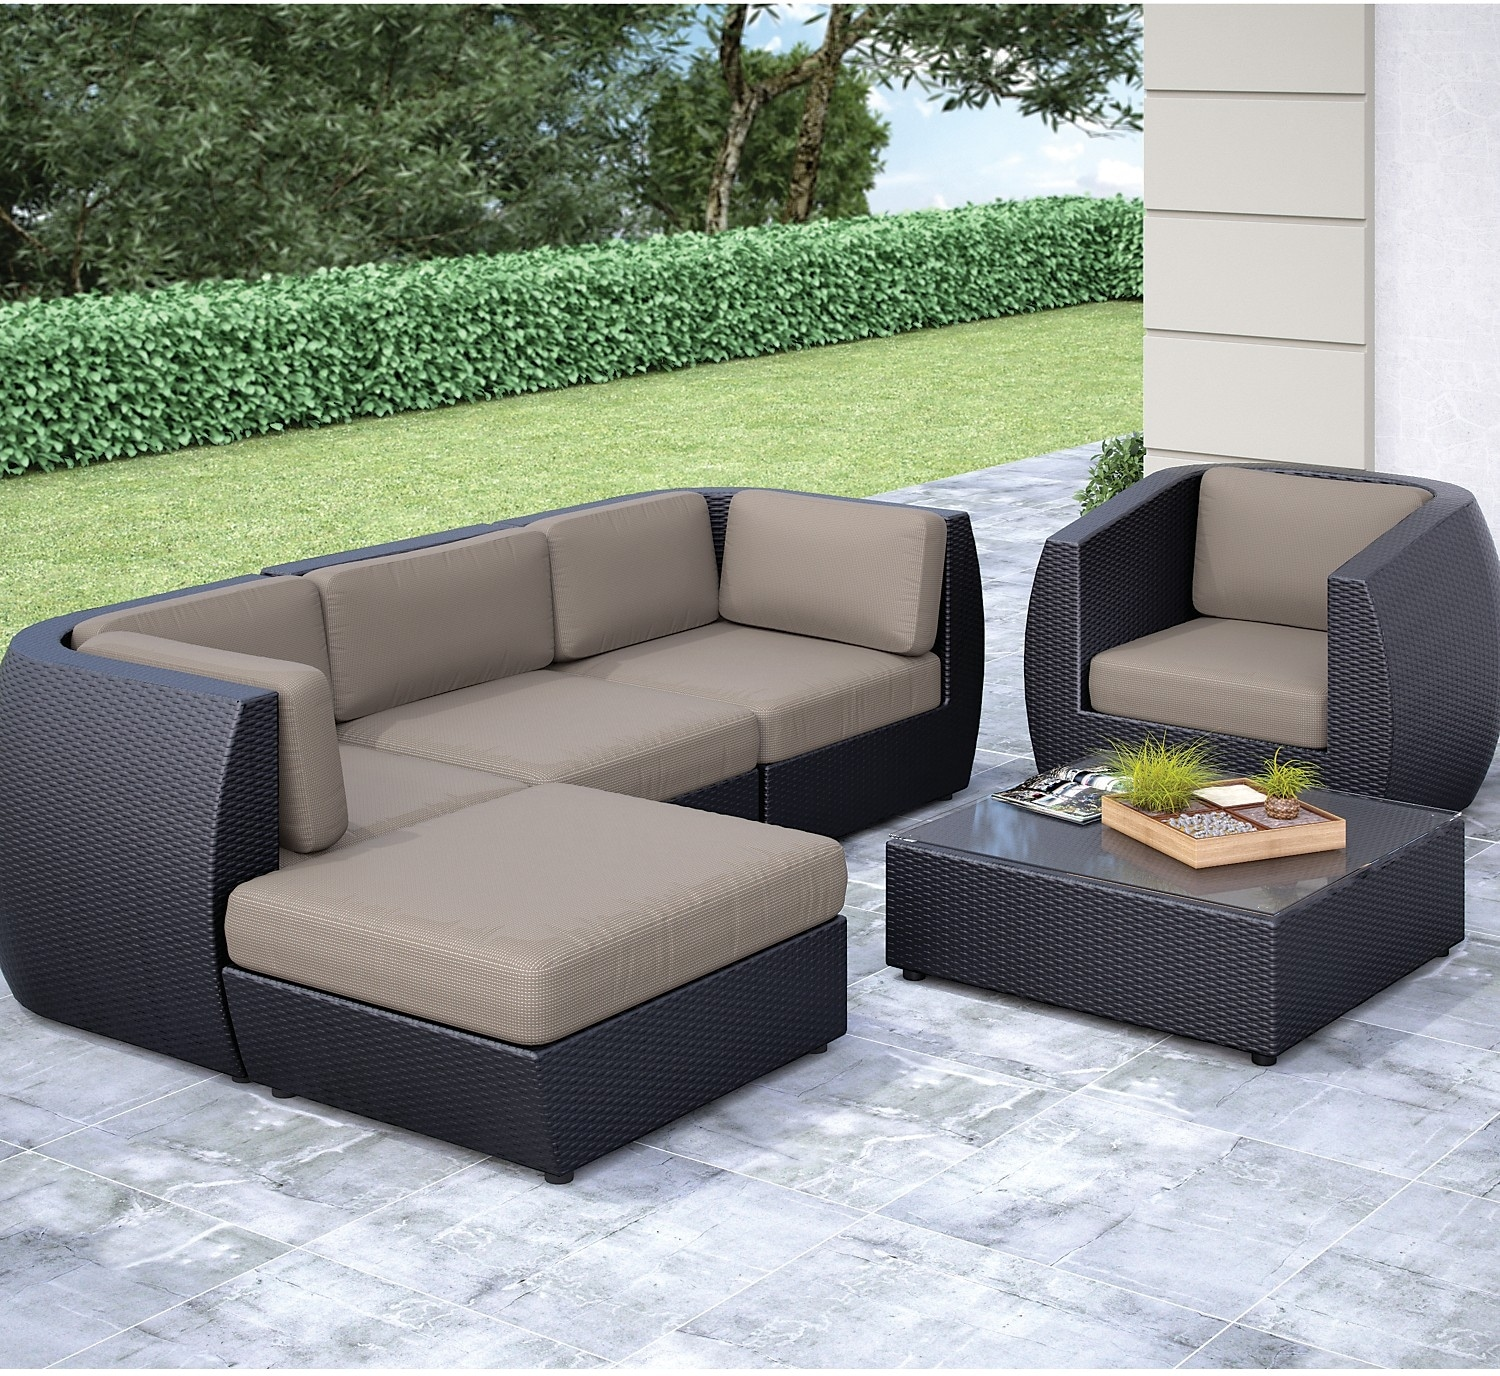 Outdoor Furniture - Seattle Conversation Patio Set - Sectional